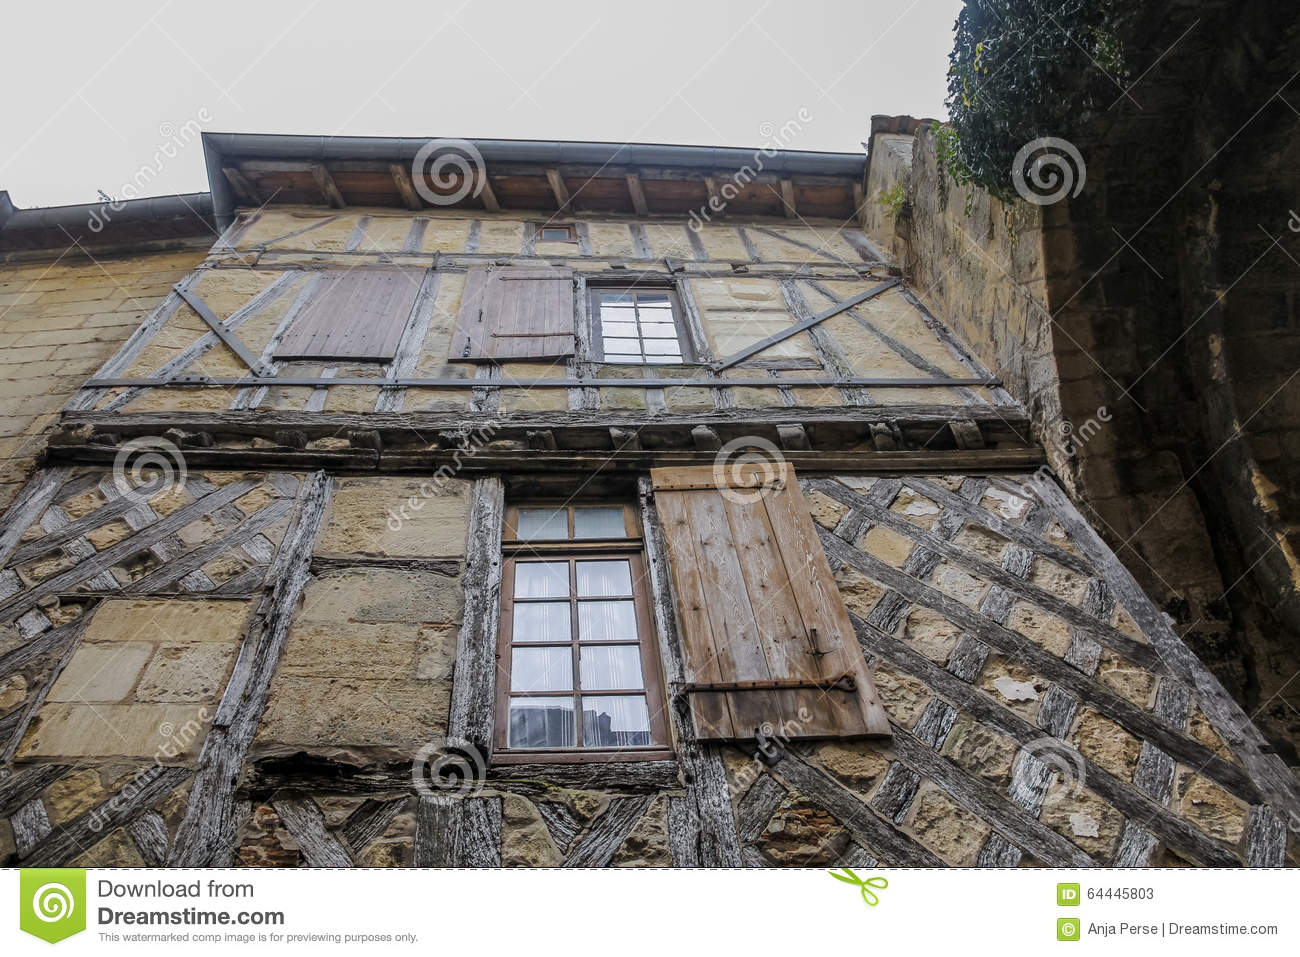 Vieille maison en bois et en pierre photo stock image for Vieille maison en pierre